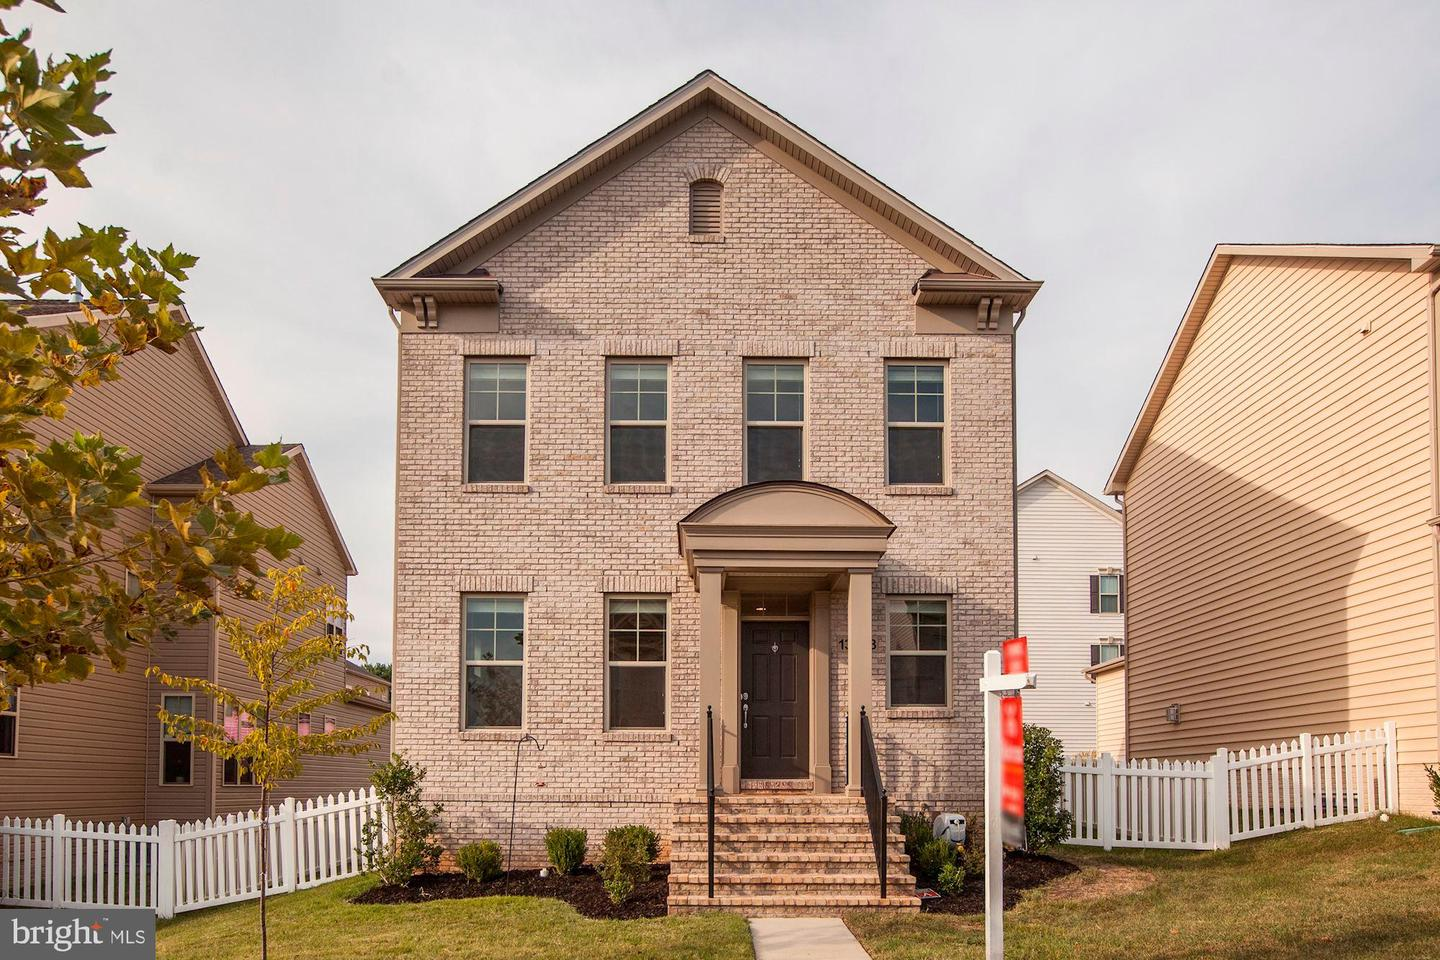 13603 WINDY MEADOW LANE, SILVER SPRING, Maryland